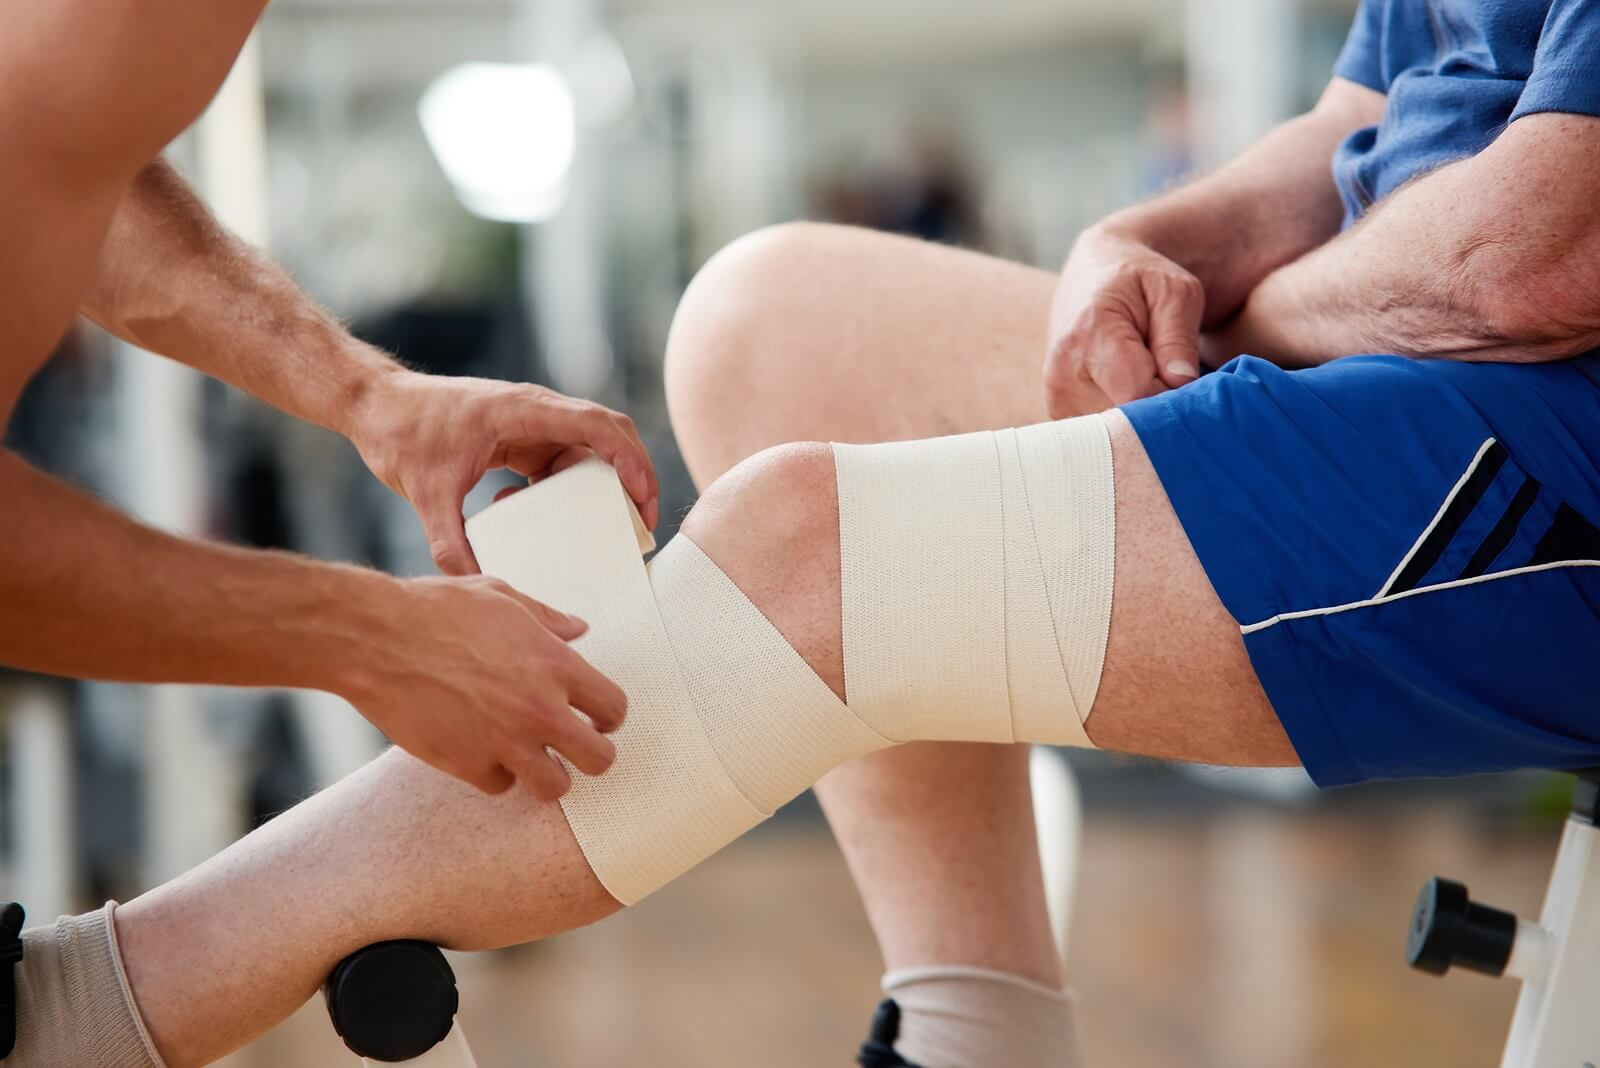 muscle strain injury - lawyer gets compensation